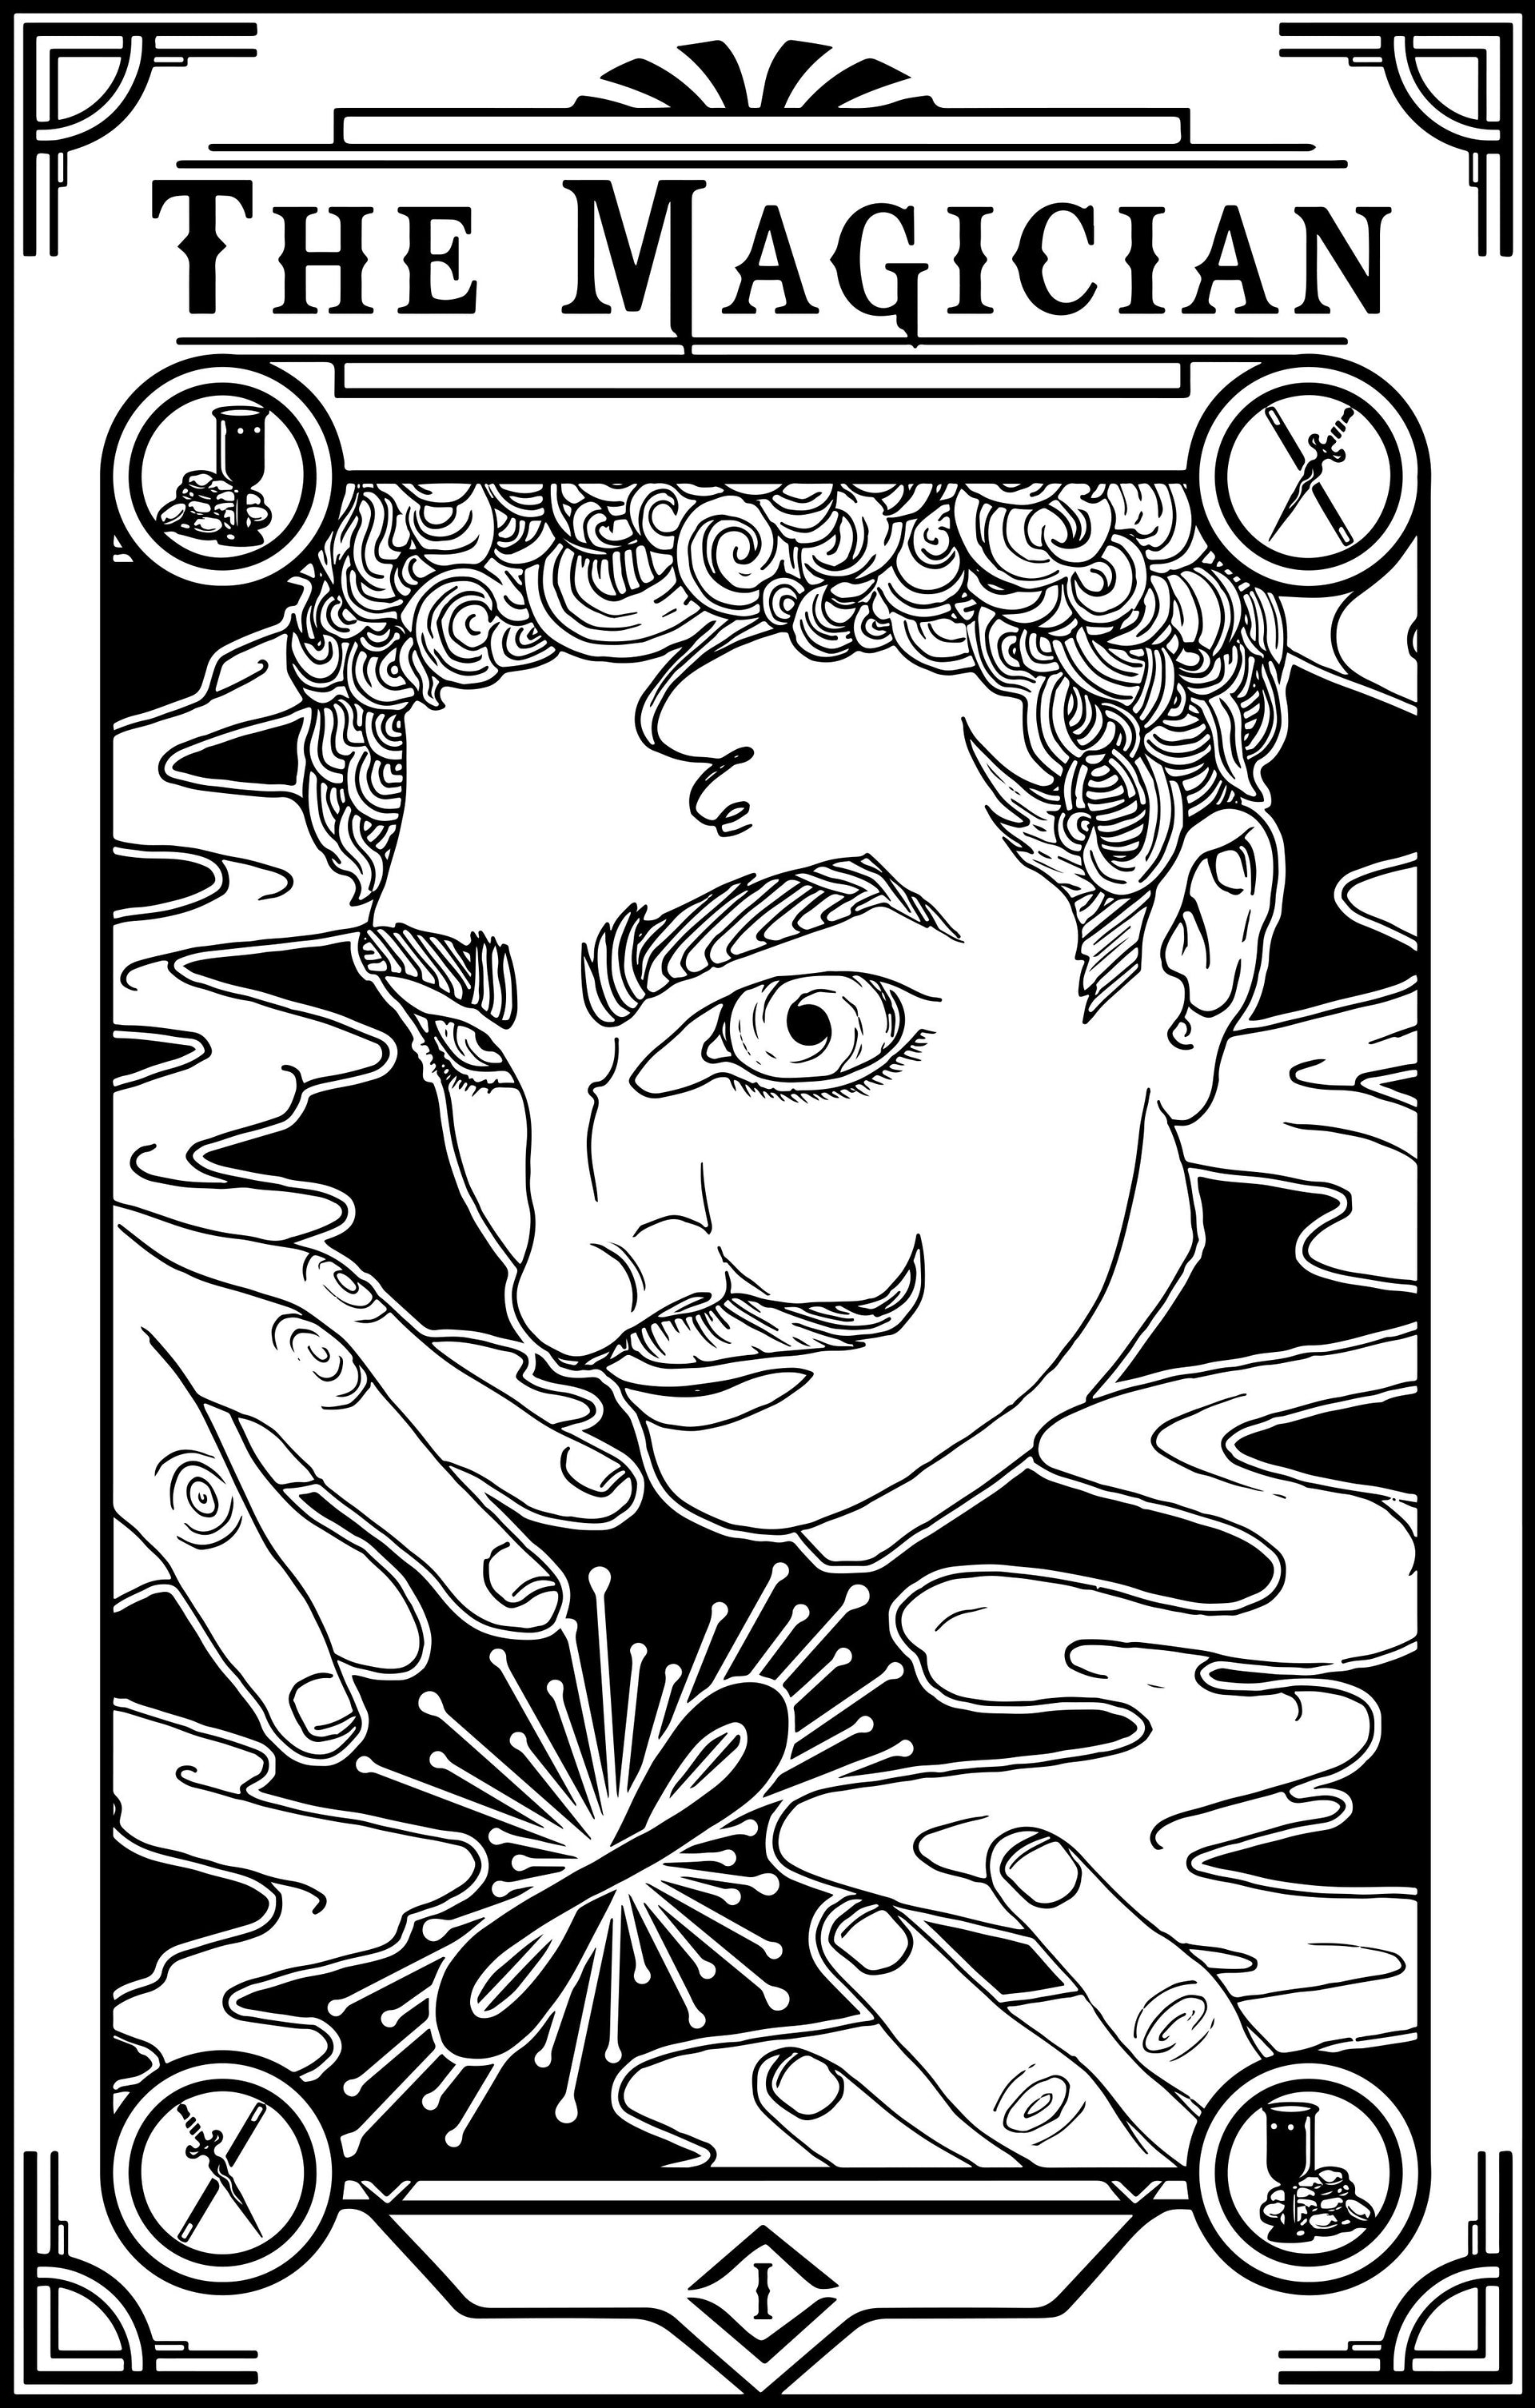 The Magician Tarot Design – Tom van der Lee Illustration